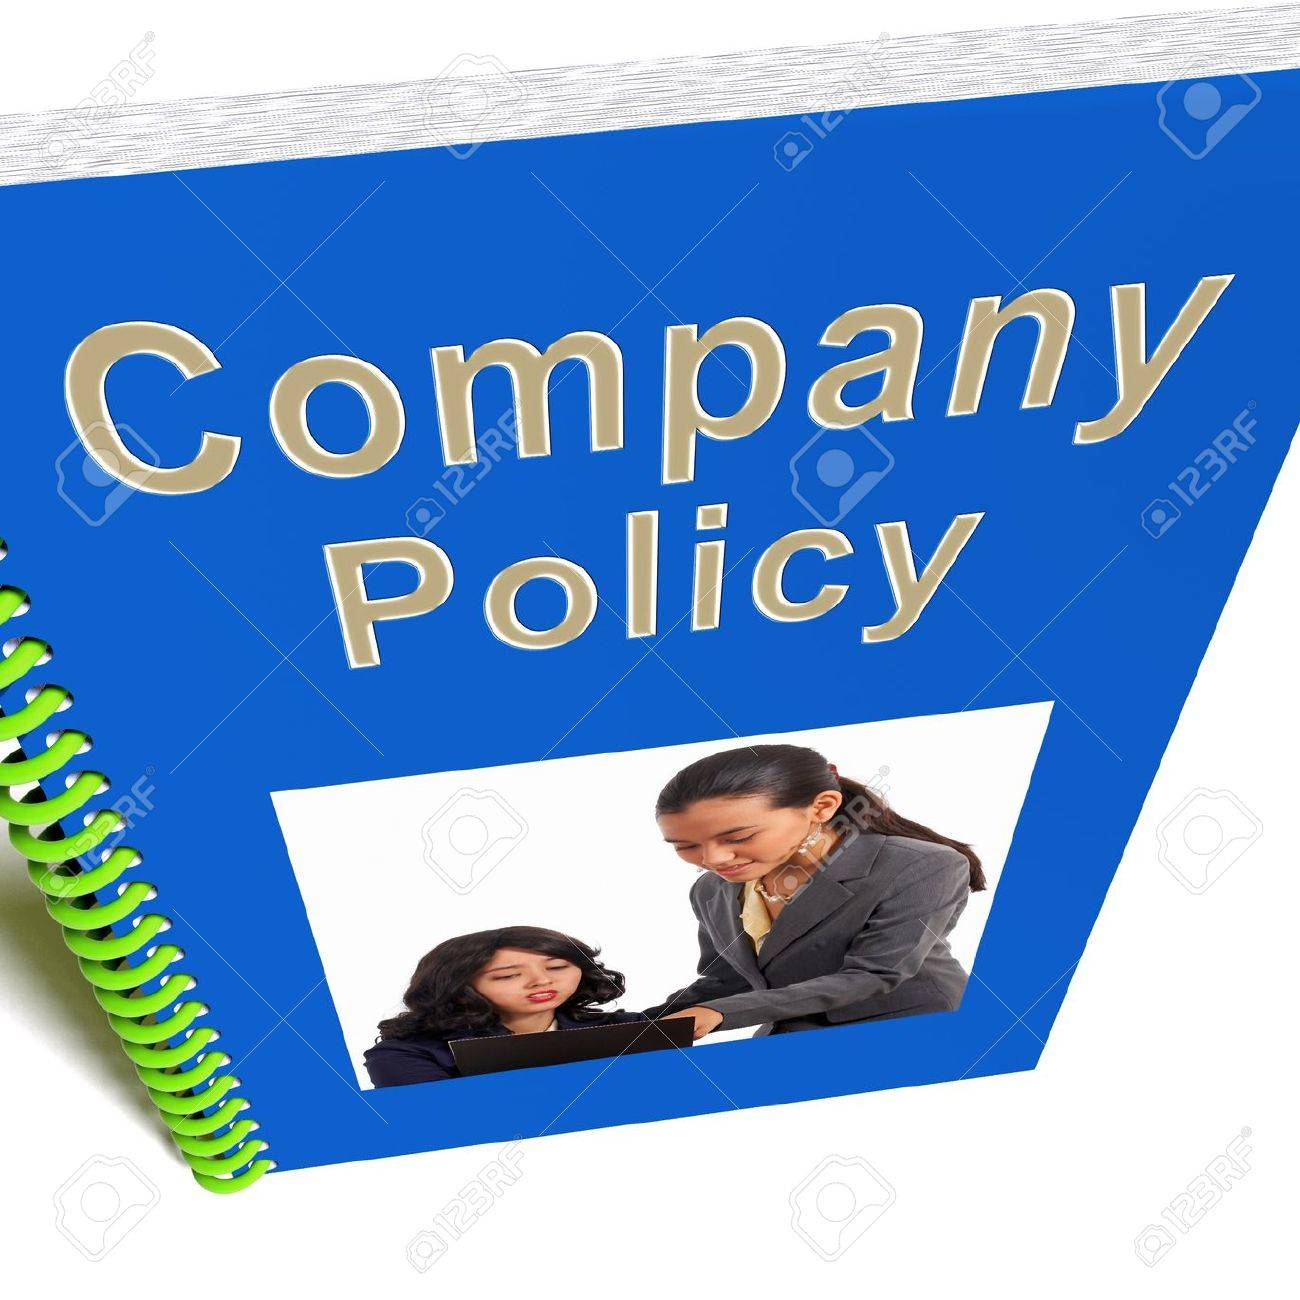 Company Policy Book Showing Rules For Employees Photo – Company Policy